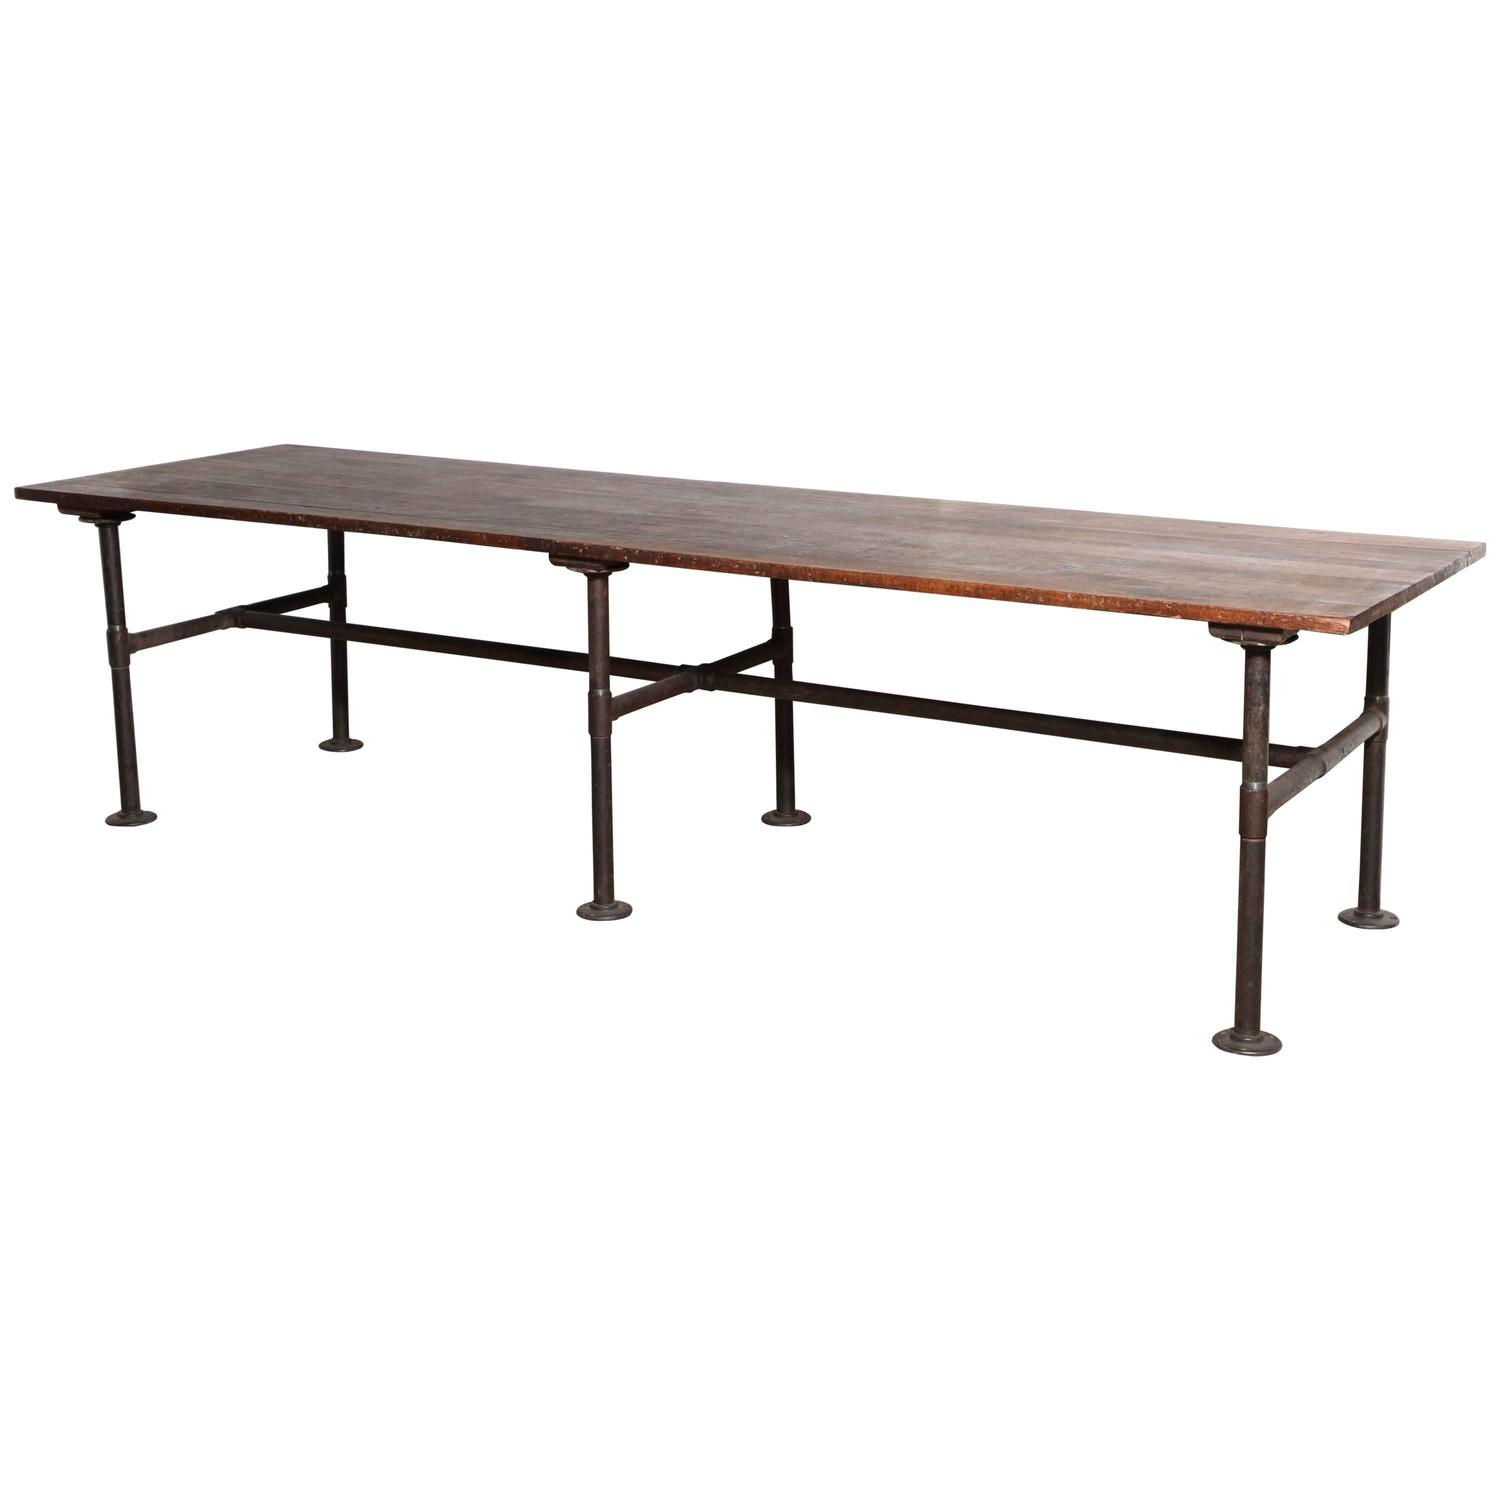 19th century 10 39 foot long solid black walnut industrial